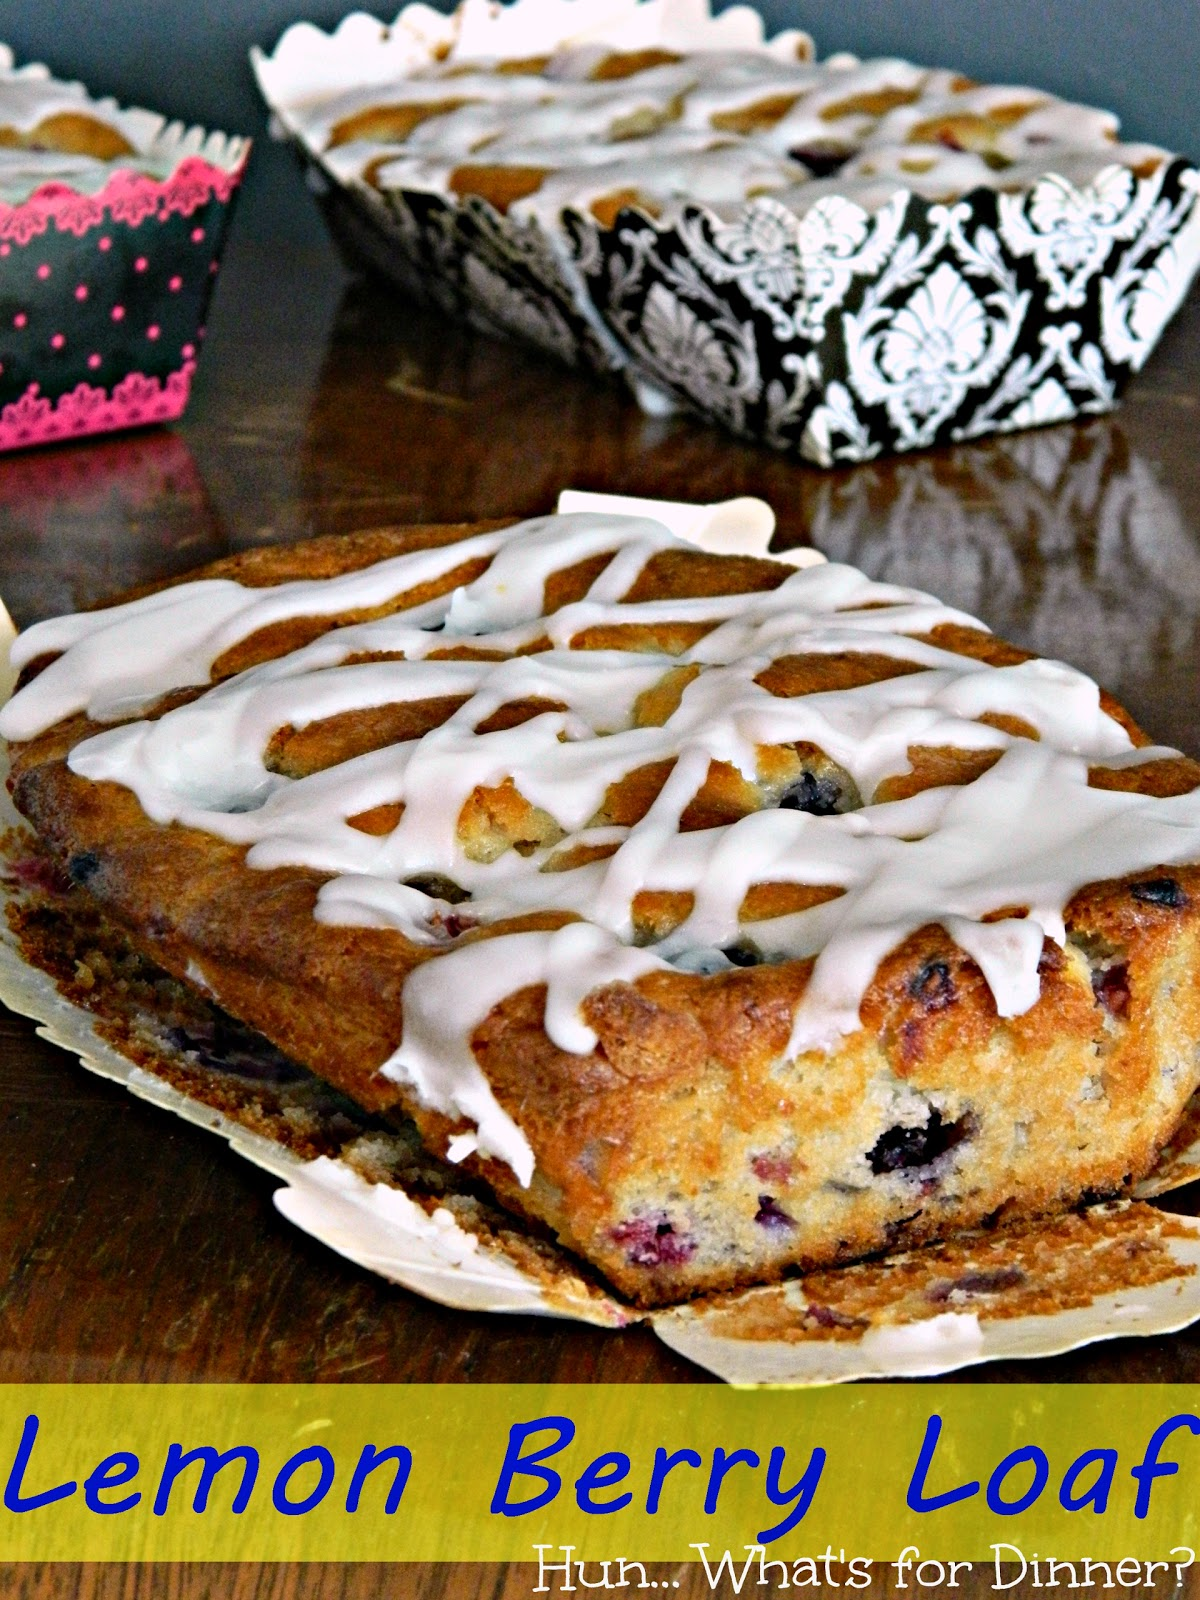 Hun... What's for Dinner? | Lemon Berry Loaf- Fresh blueberries and raspberries take center stage in this moist and tangy lemon bread.